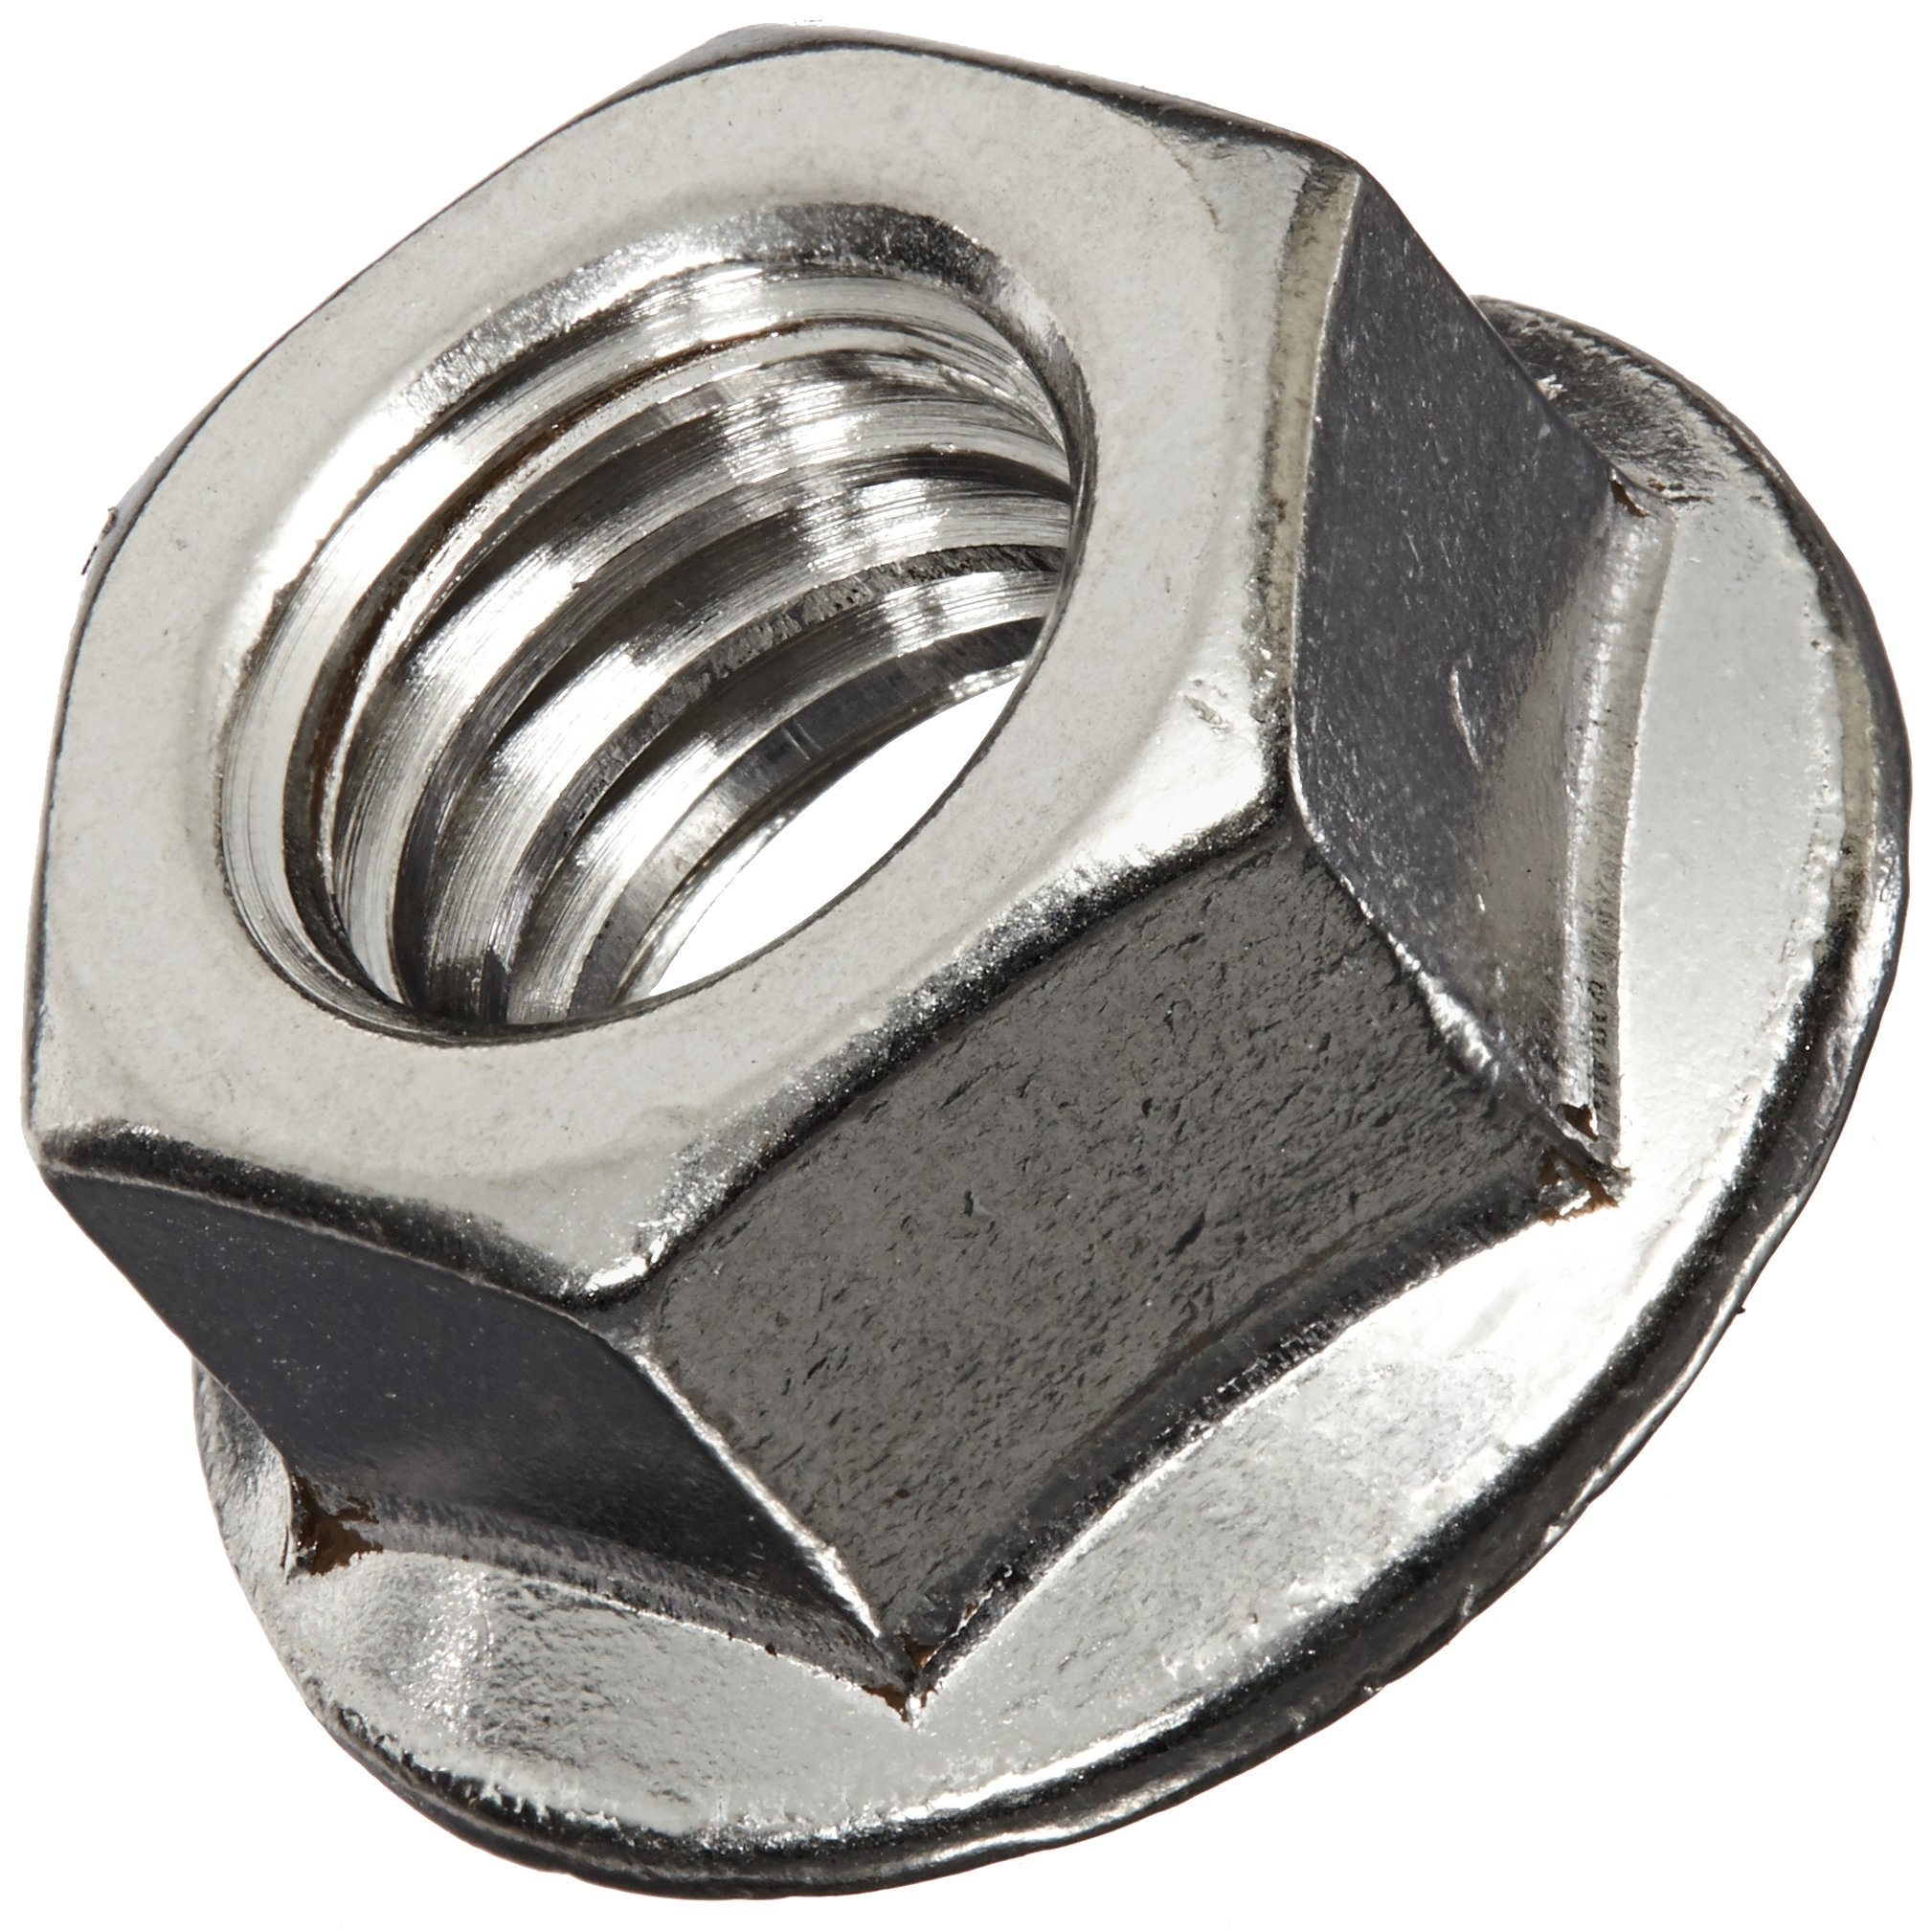 18-8 Stainless Steel Hex Flange Nut, Plain Finish, Self-Locking Serrated Flange, ASME B18.2.2, 3/8''-16 Threads (Pack of 25) by Small Parts